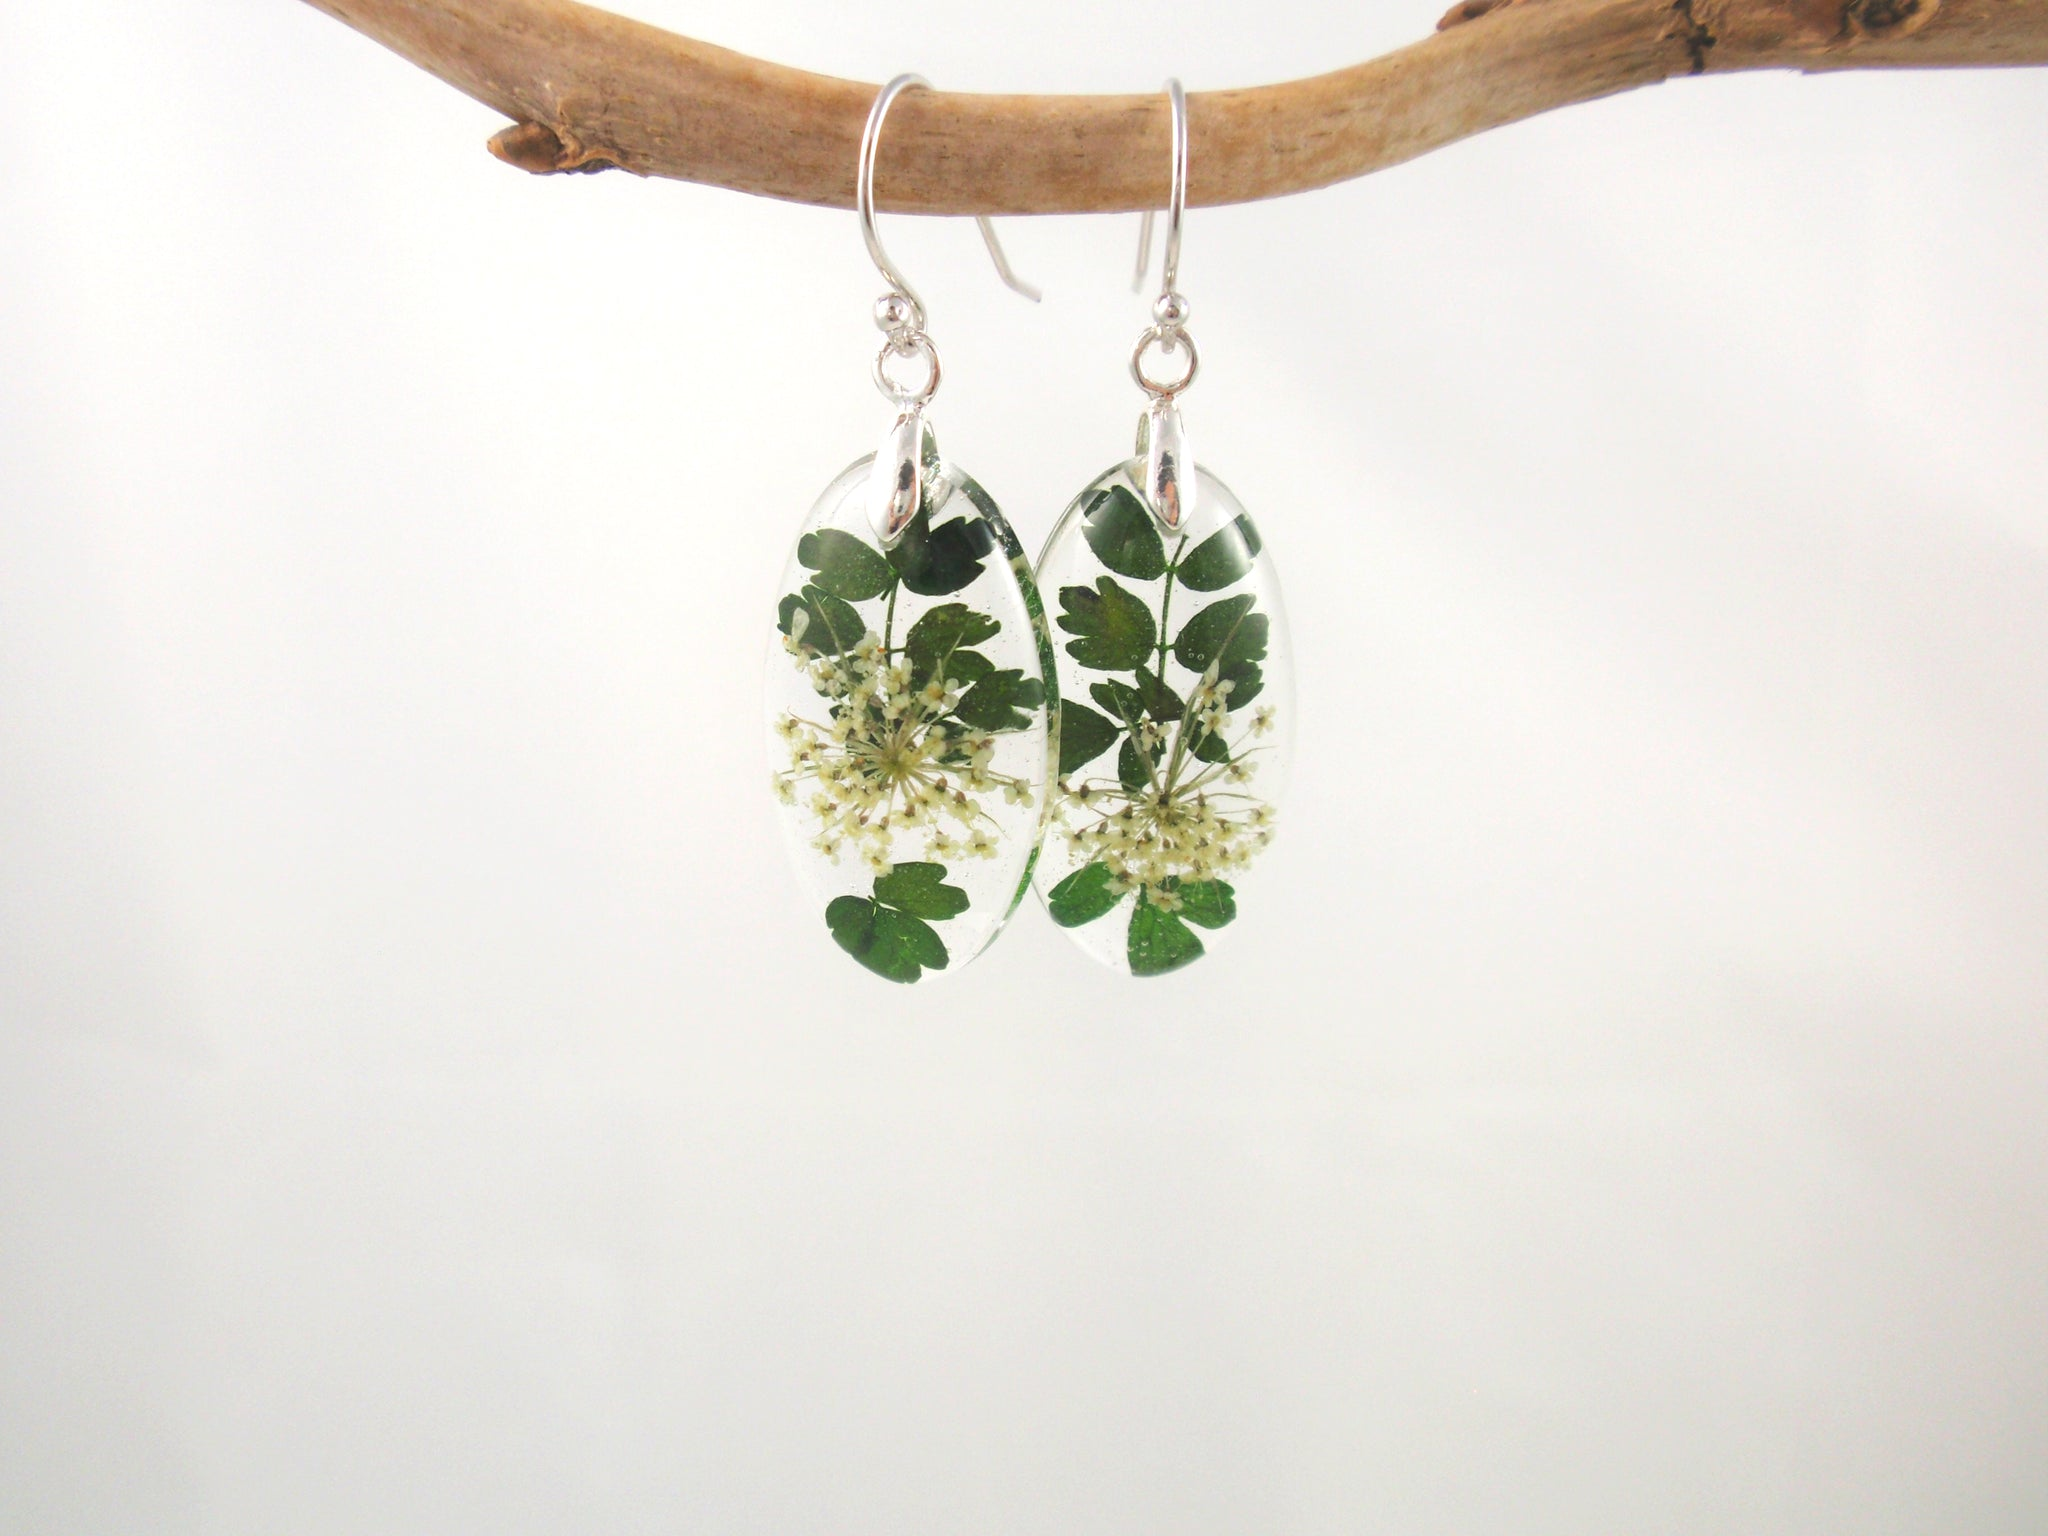 Botanical Earrings, Queen Anne's lace and leaves jewelry